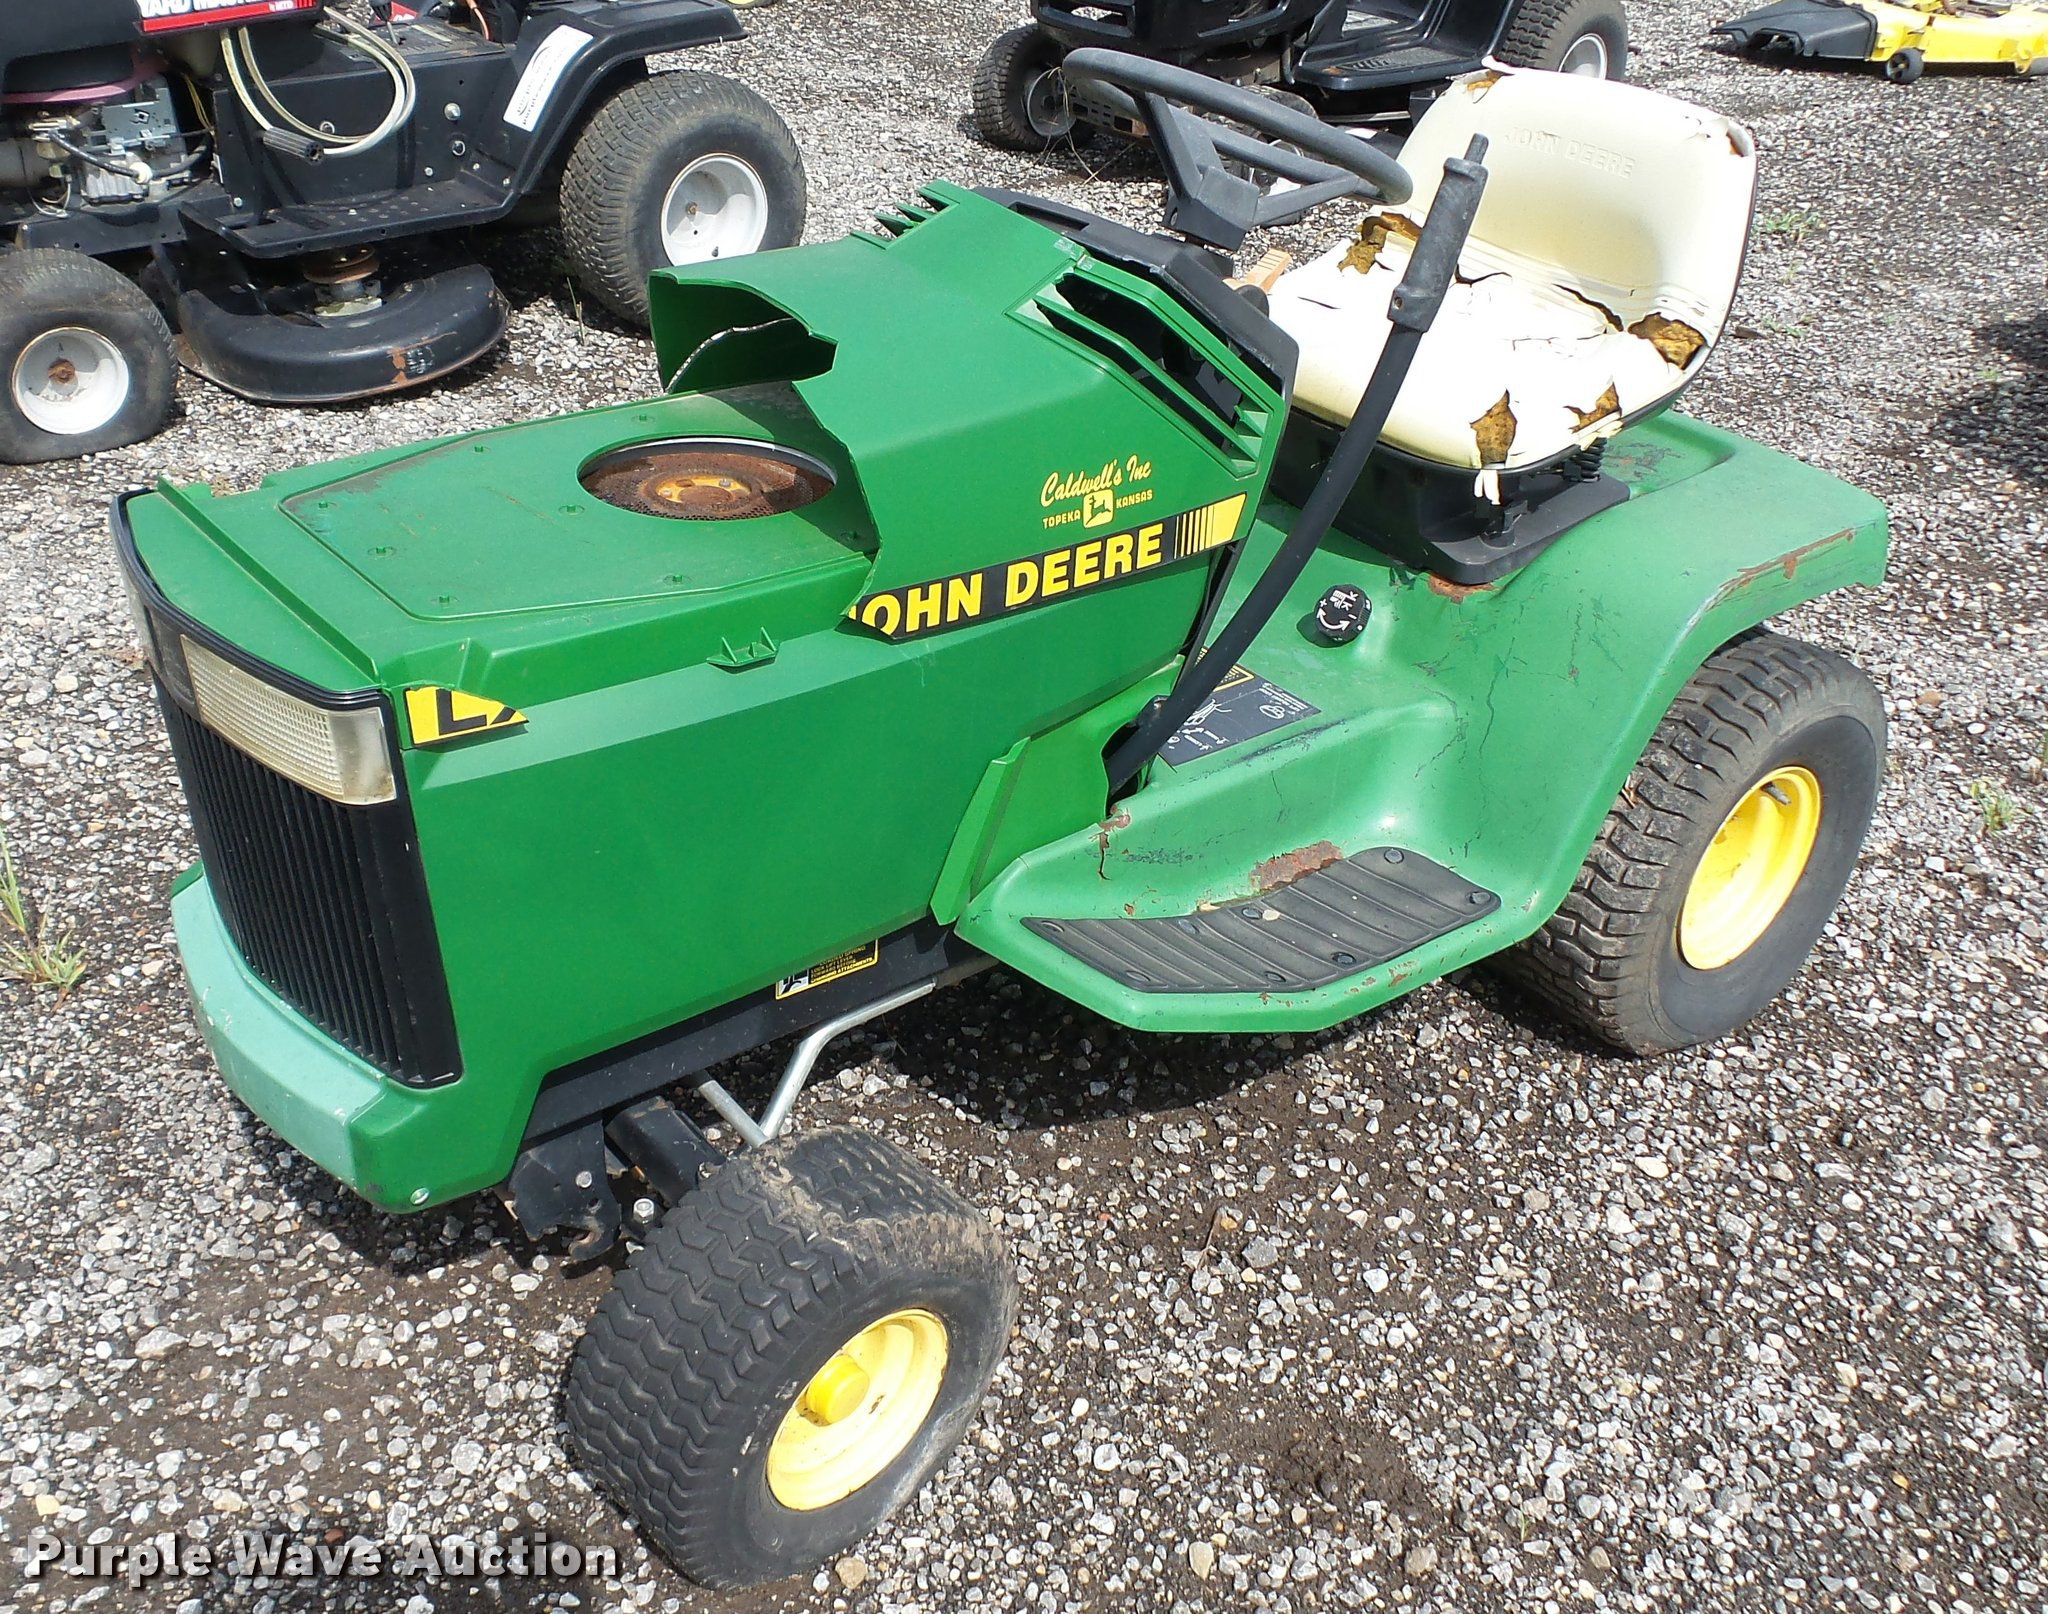 DA1931 image for item DA1931 1991 John Deere LX186 lawn mower